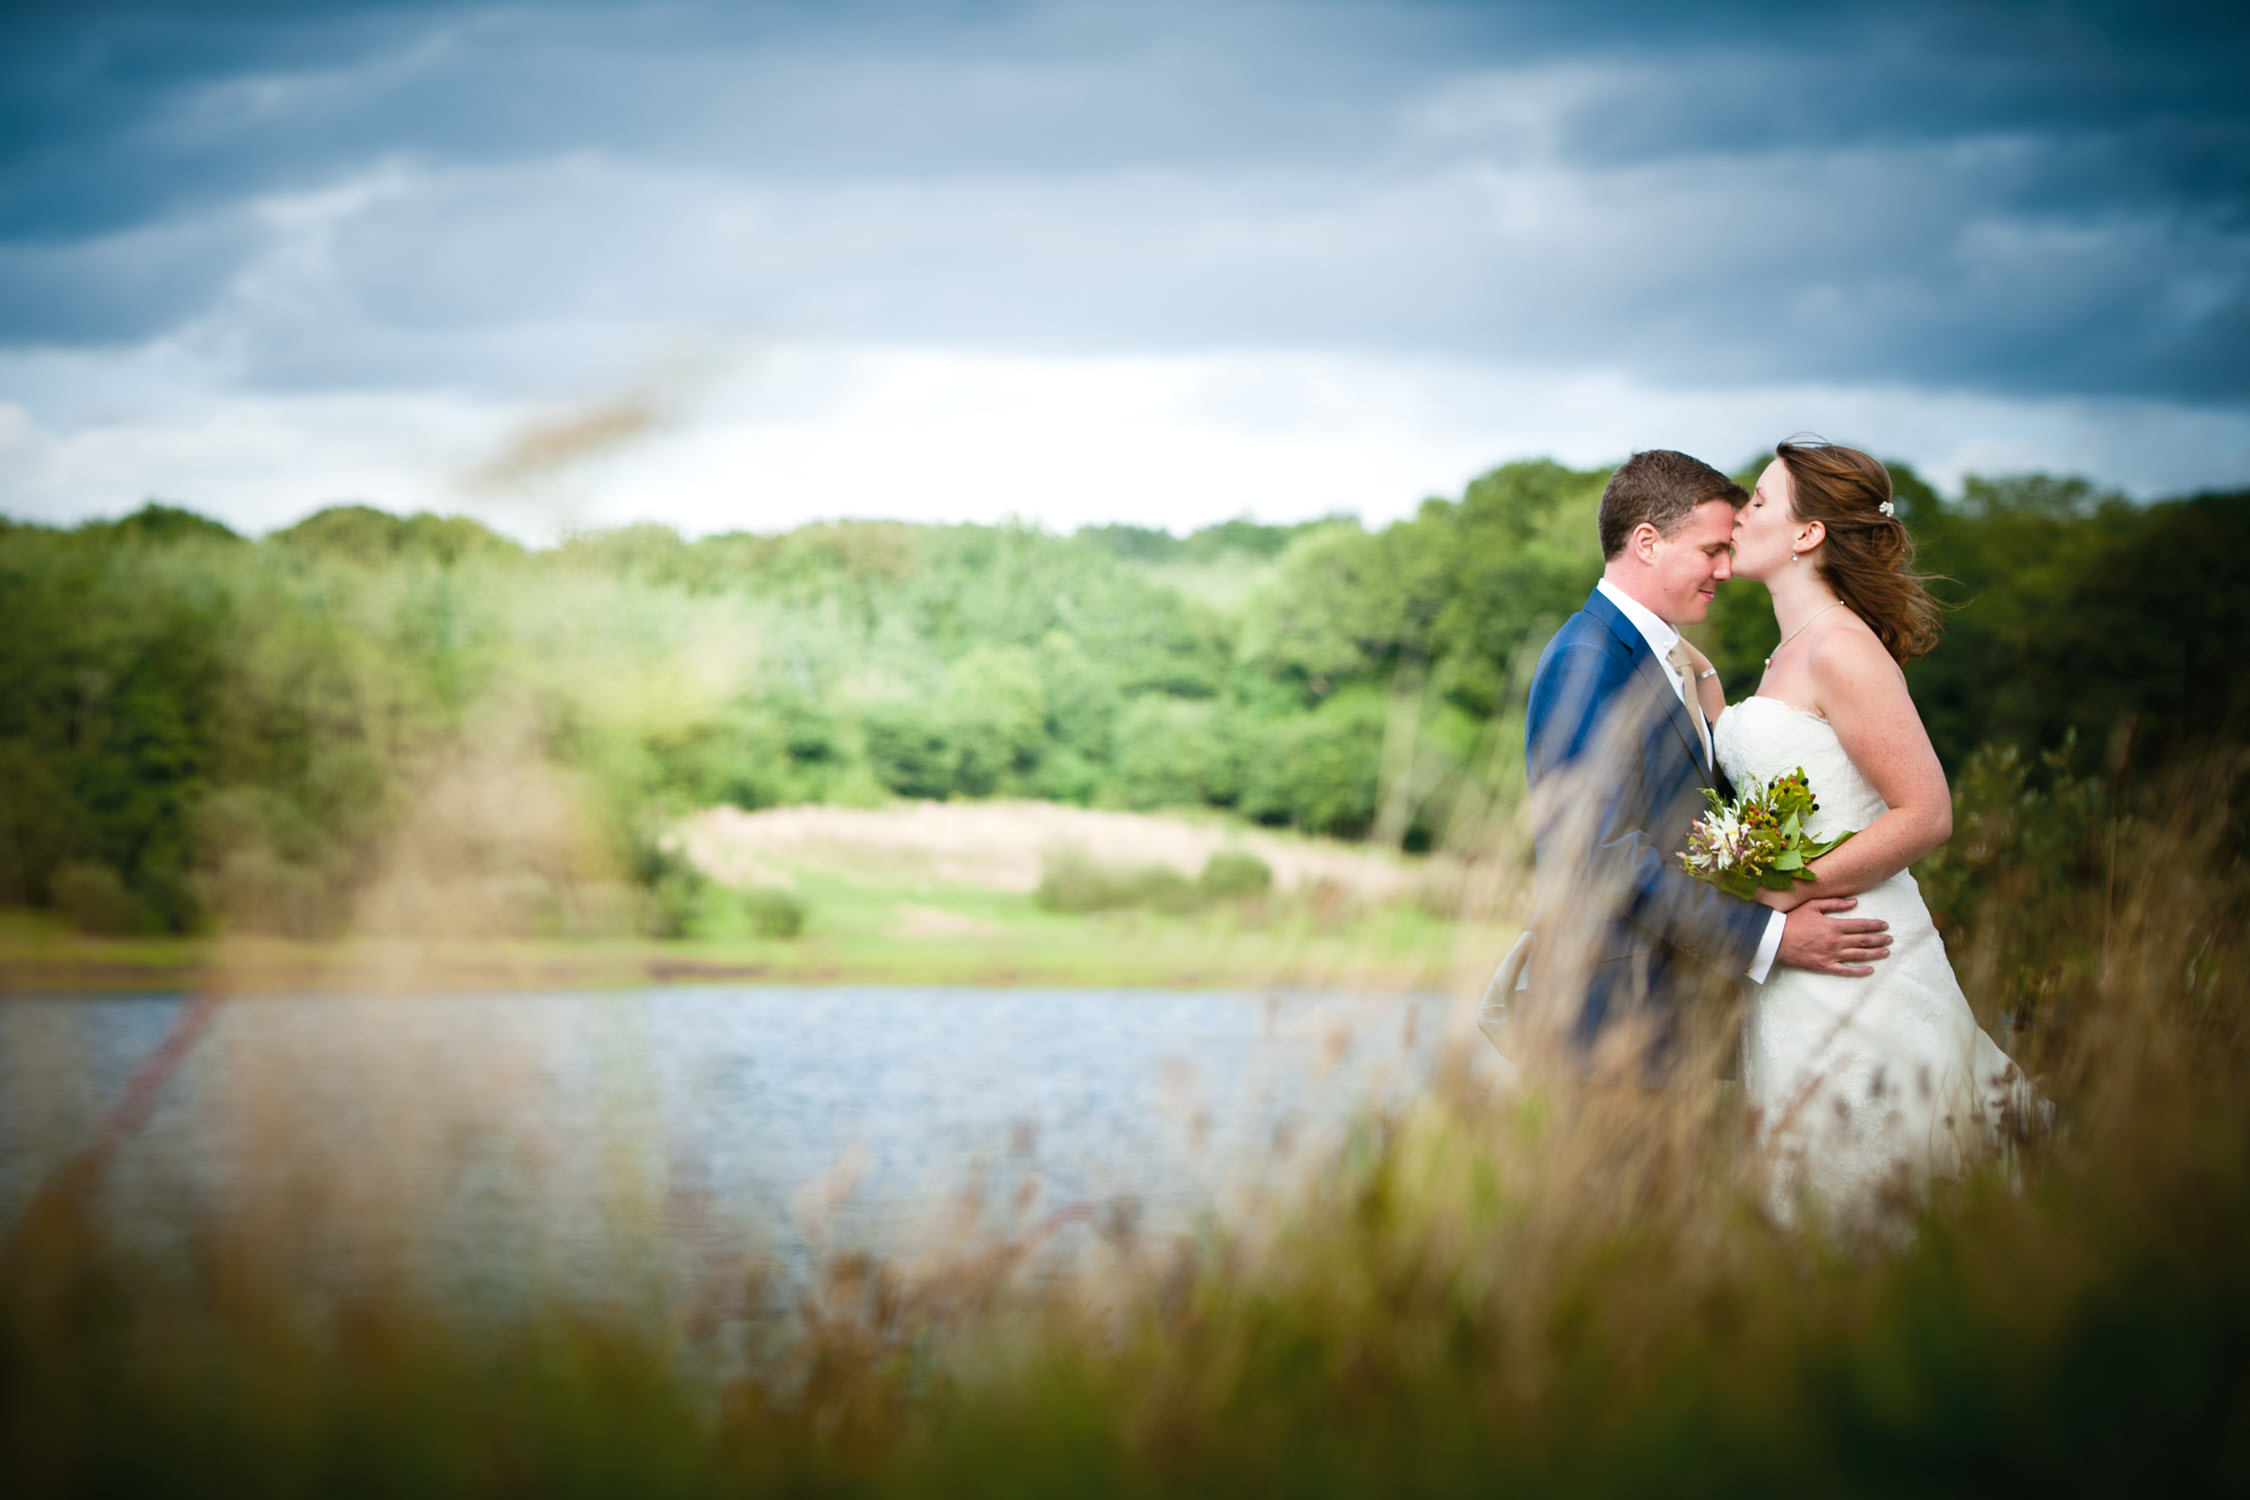 roadford lake wedding photographer - bride and groom next to the lake